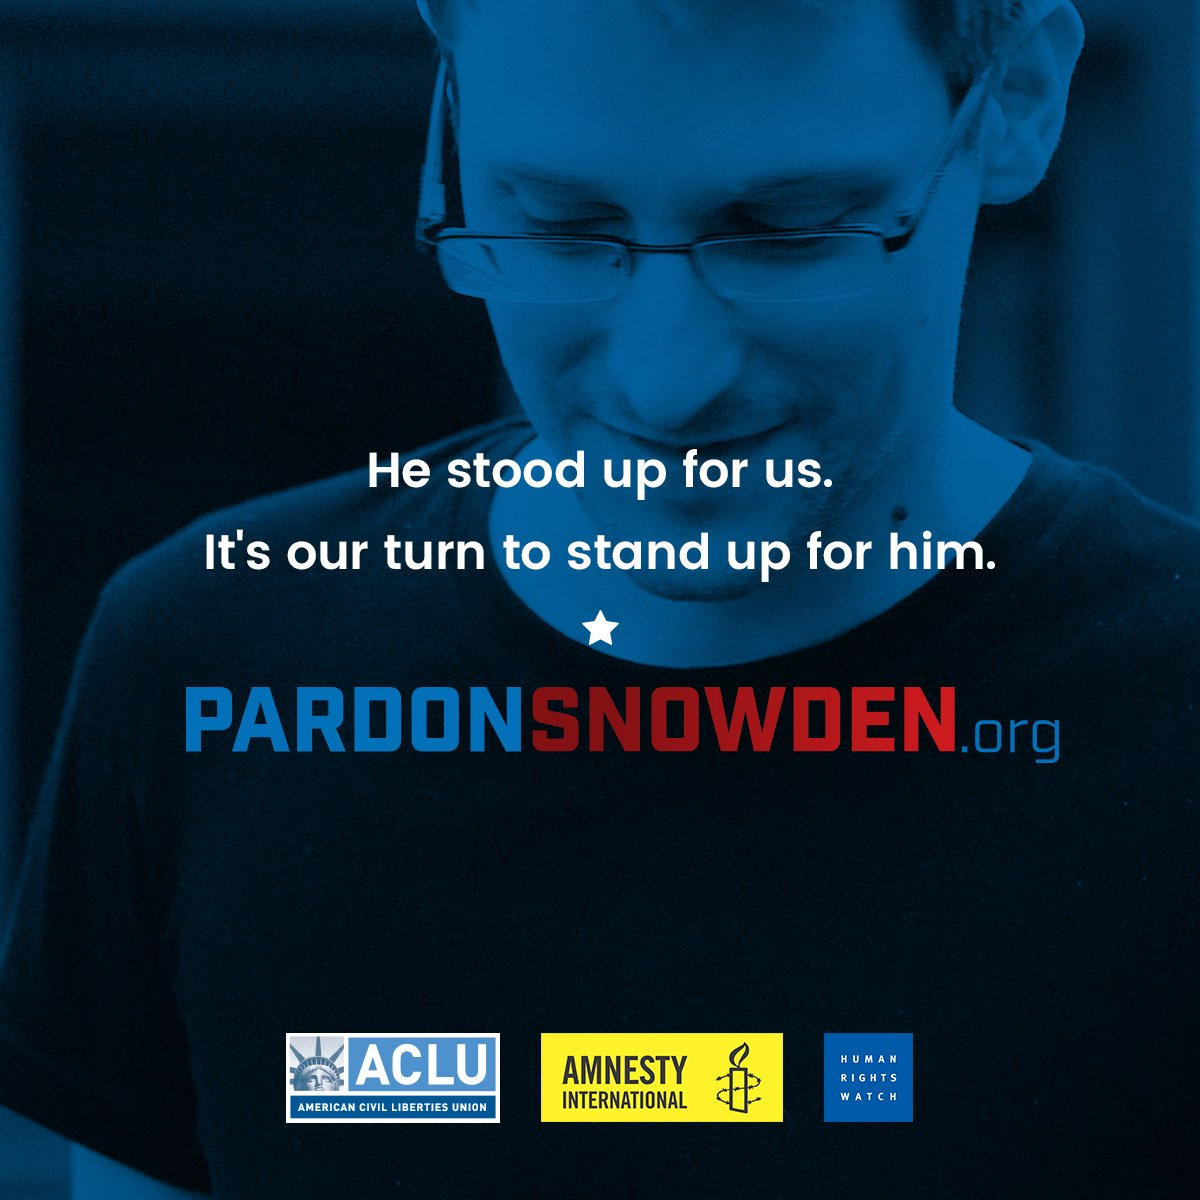 3 years ago he warned public of massive gov surveillance, time for Obama to #PardonSnowden https://t.co/BuMjcDZaJE https://t.co/OT1x3kUkmf